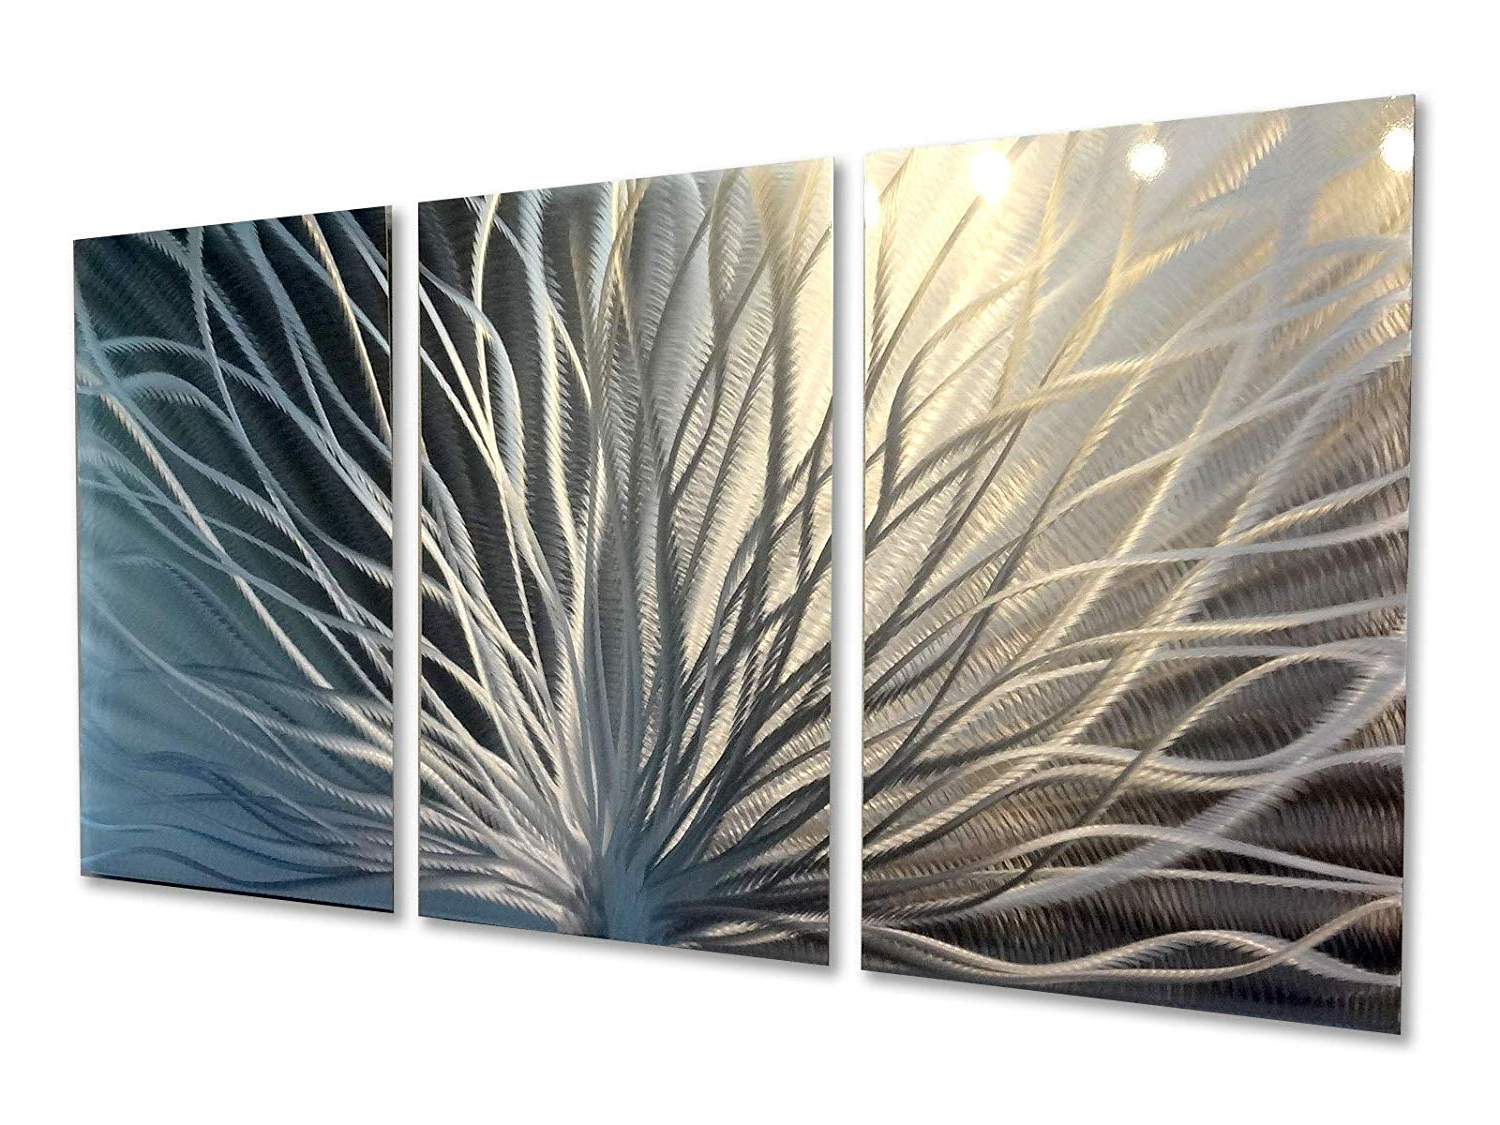 Metal Wall Art, Modern Home Decor, Abstract Wall Sculpture Regarding Well Liked Contemporary Forest Metal Wall Decor (View 4 of 20)